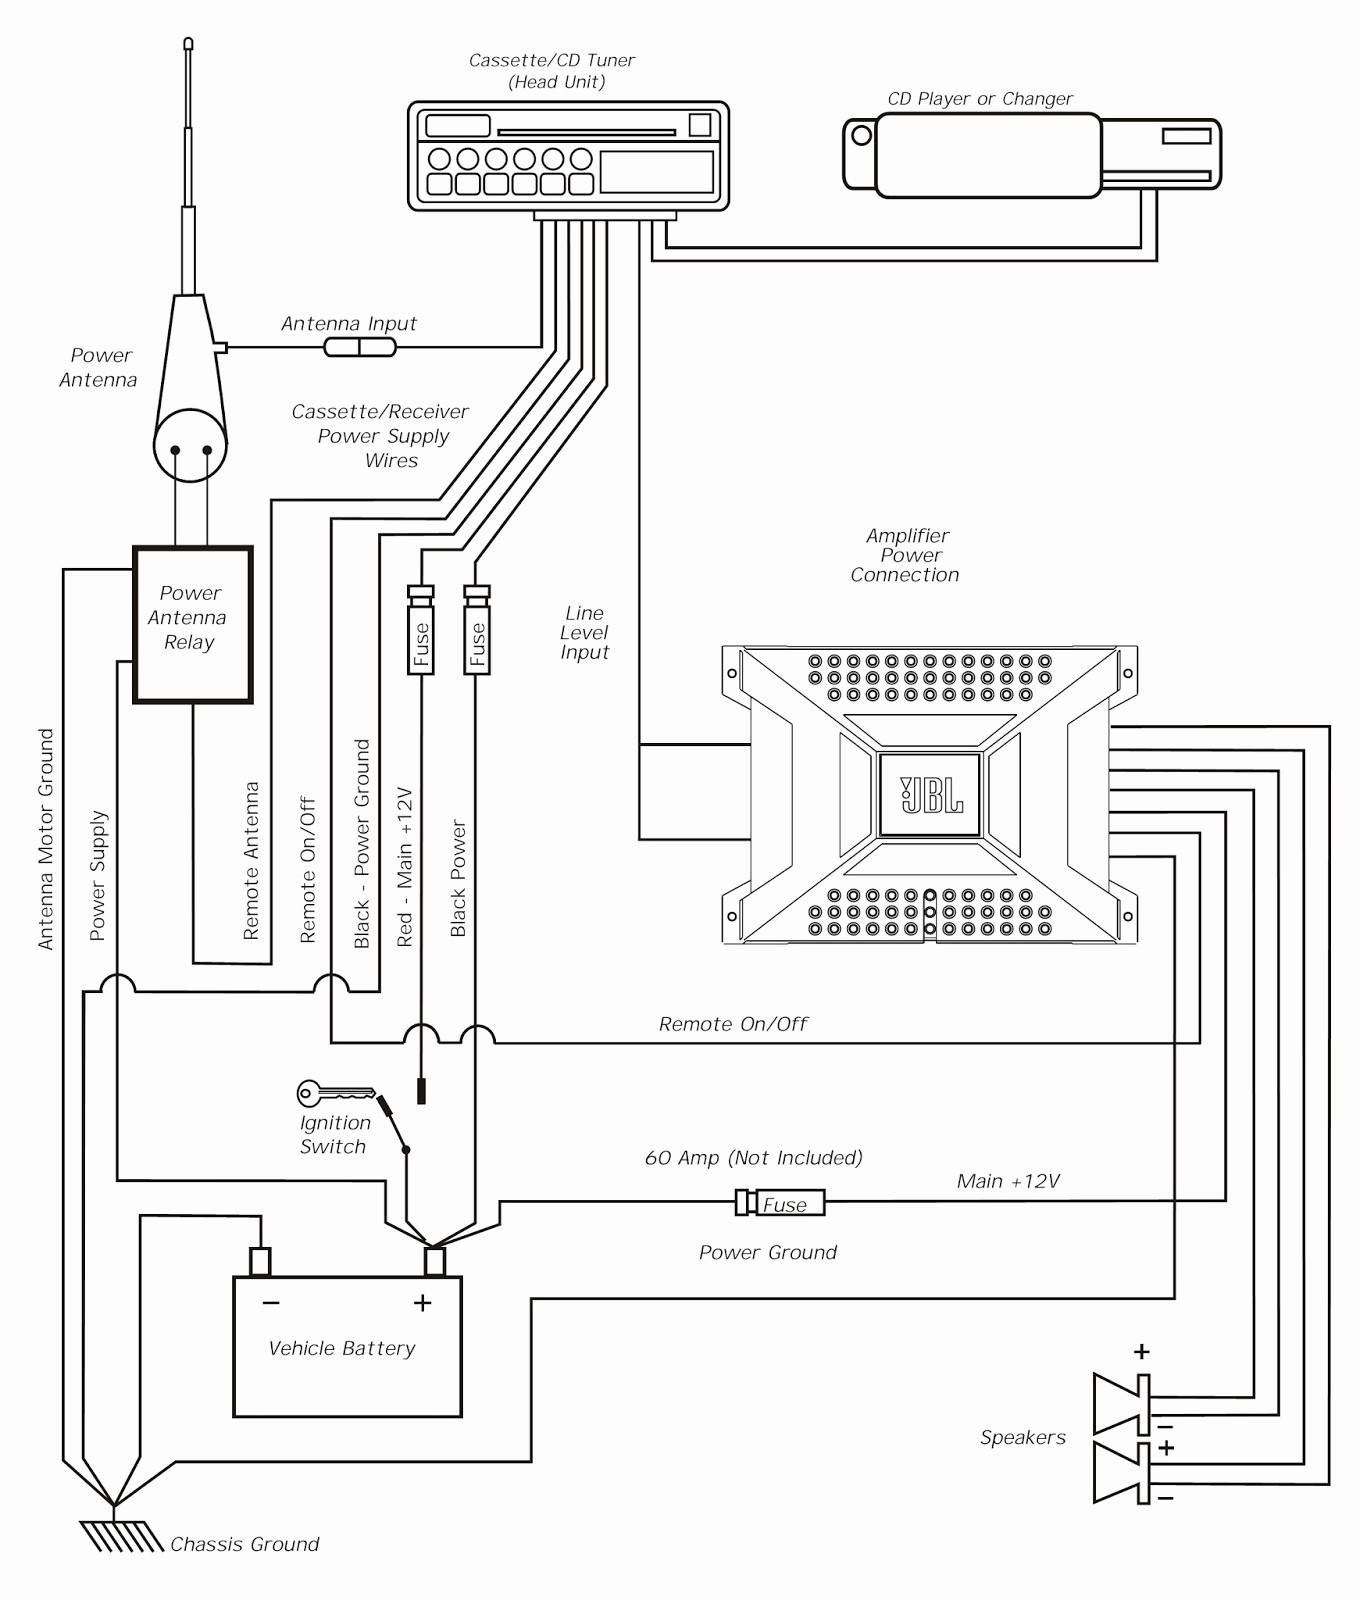 Pac Sni 15 Wiring Diagram - Wiring Diagram Blog - Pac Sni 15 Wiring Diagram